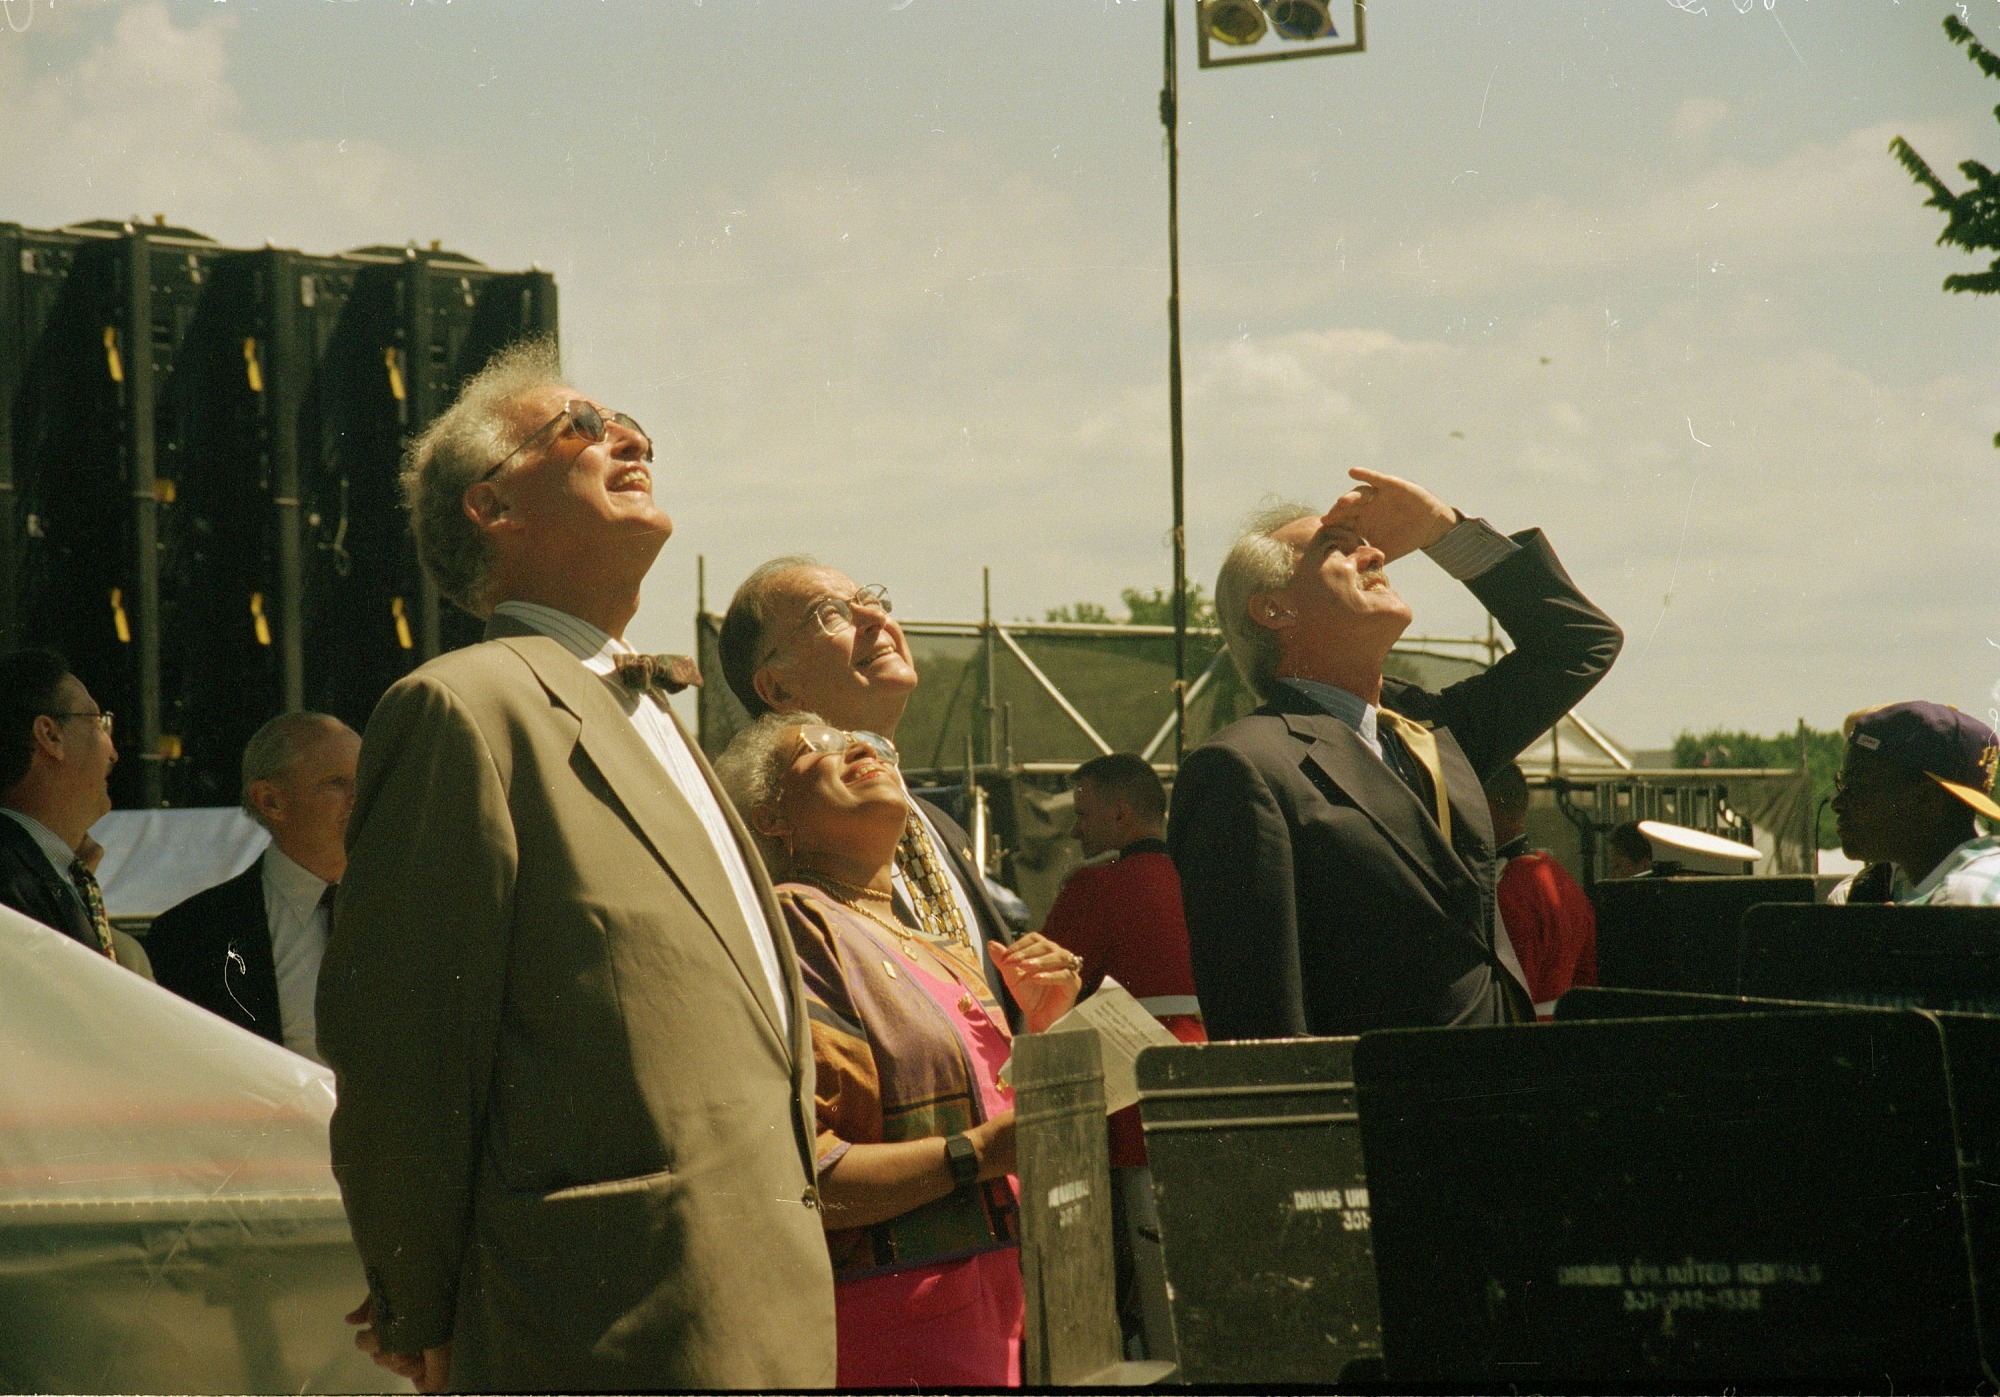 Secretary Heyman and Others Observe Hoisting of New Bell